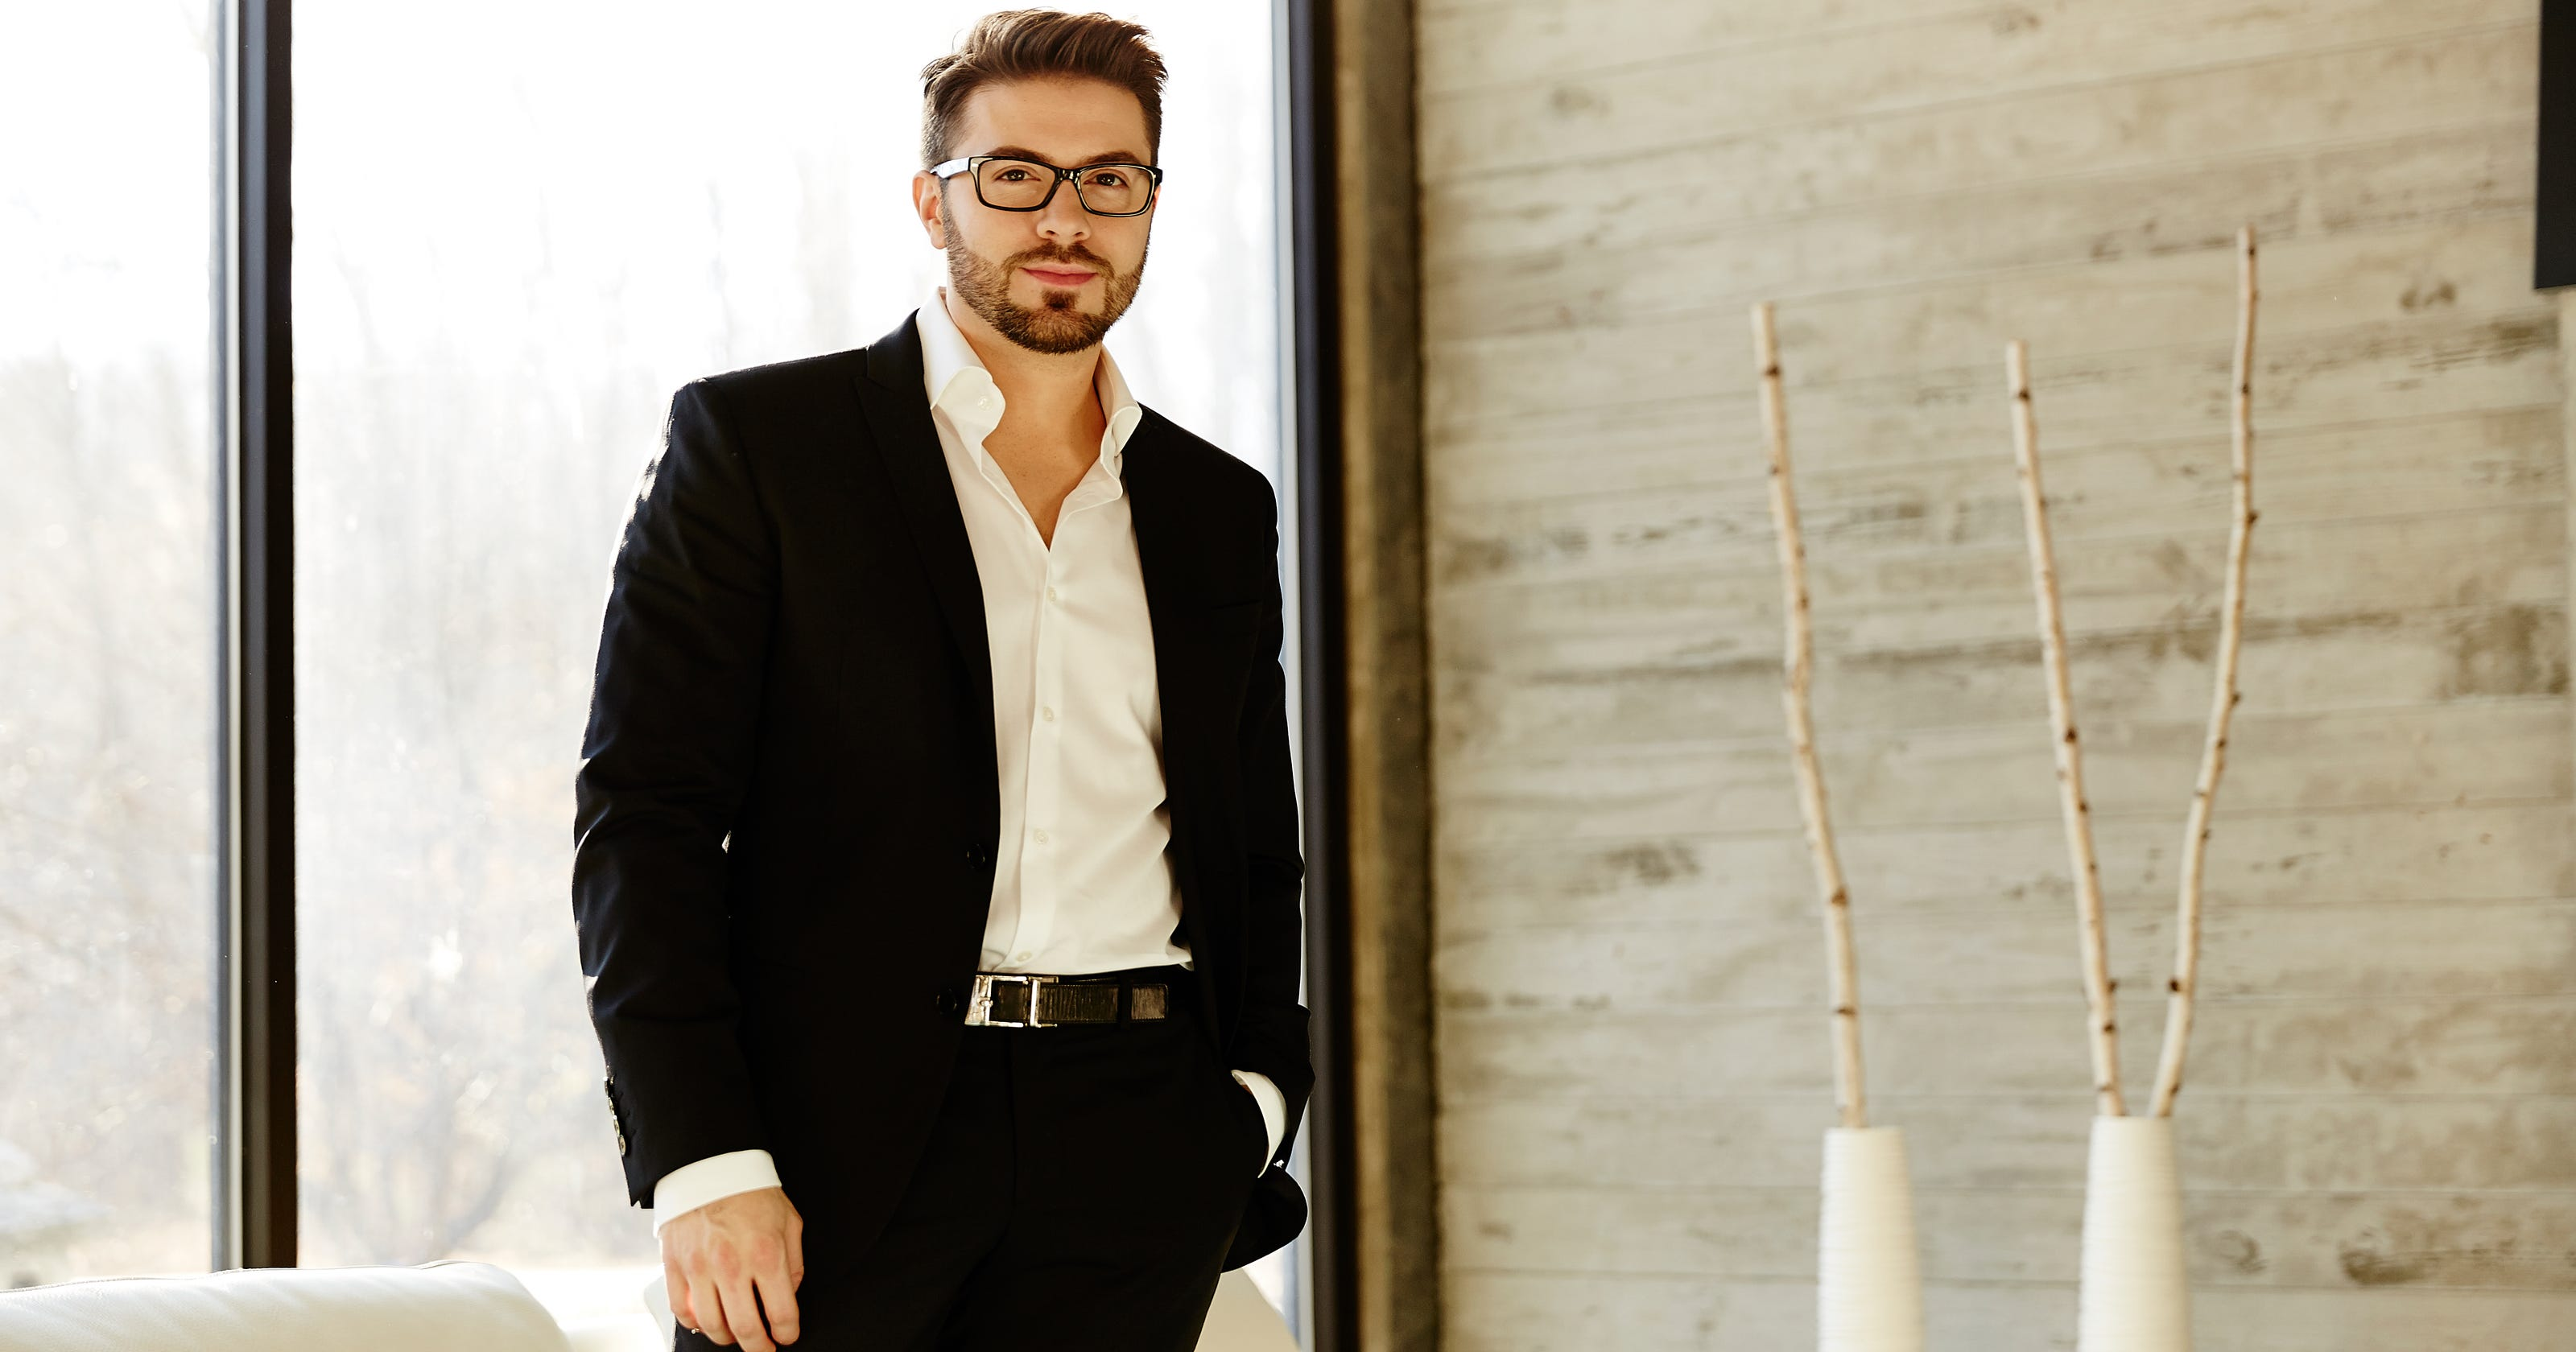 Danny Gokey finds hope, home in Christian music